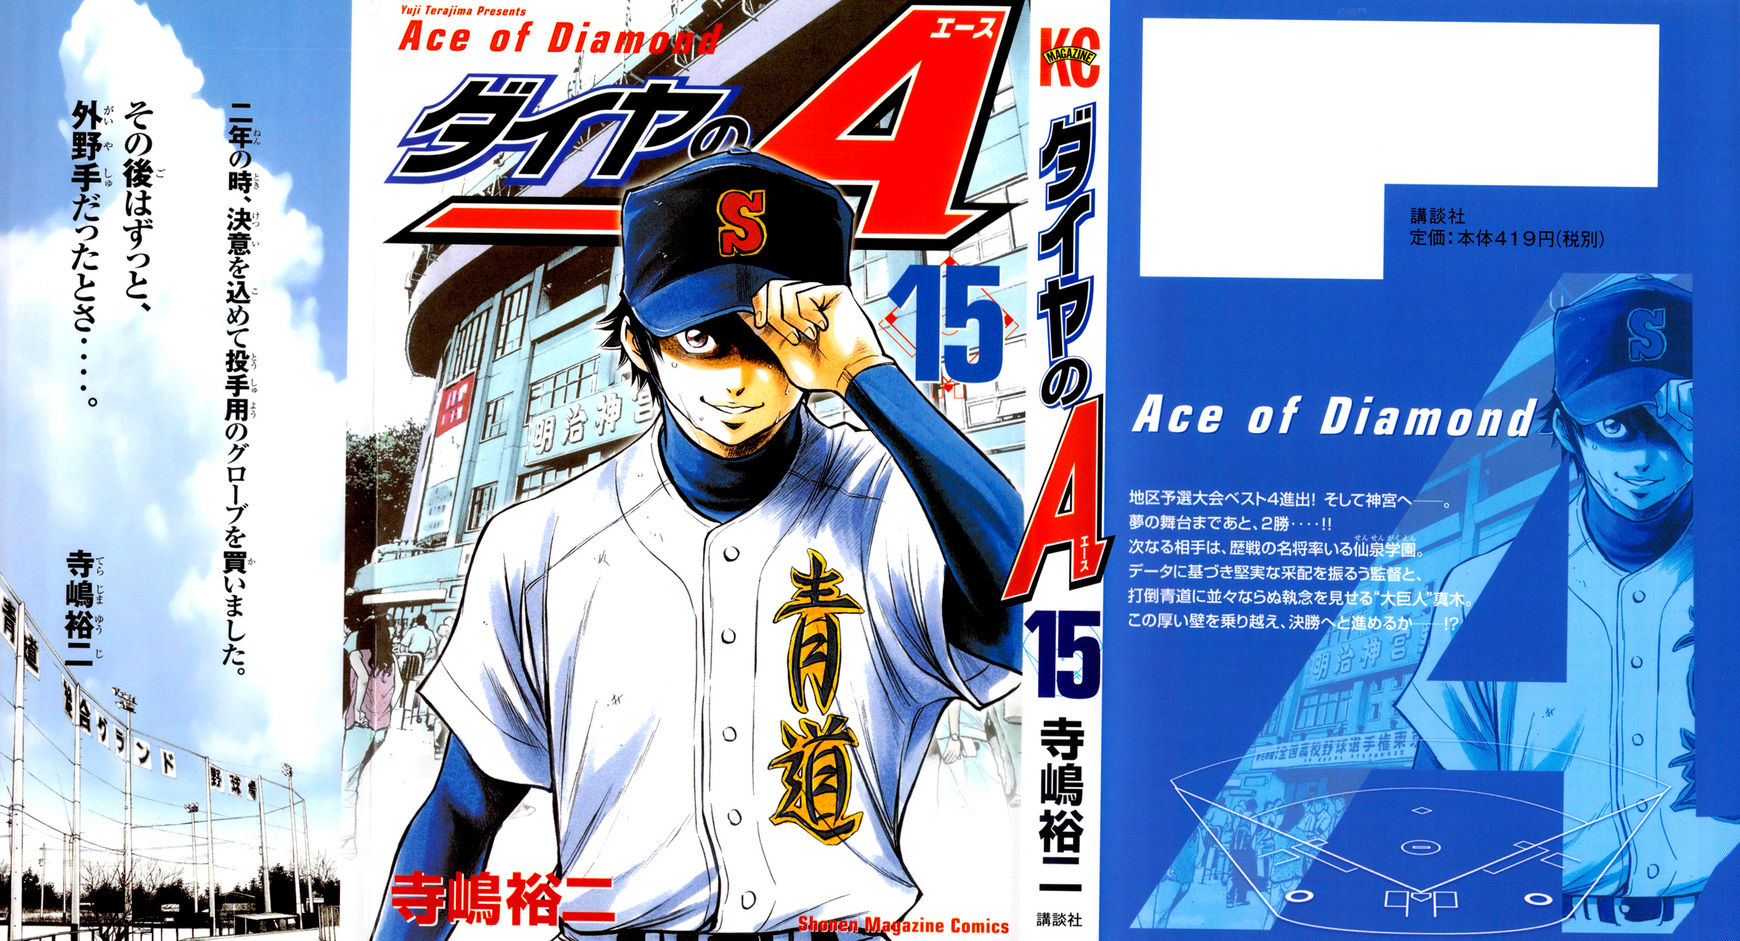 Diamond no Ace 121 Page 1